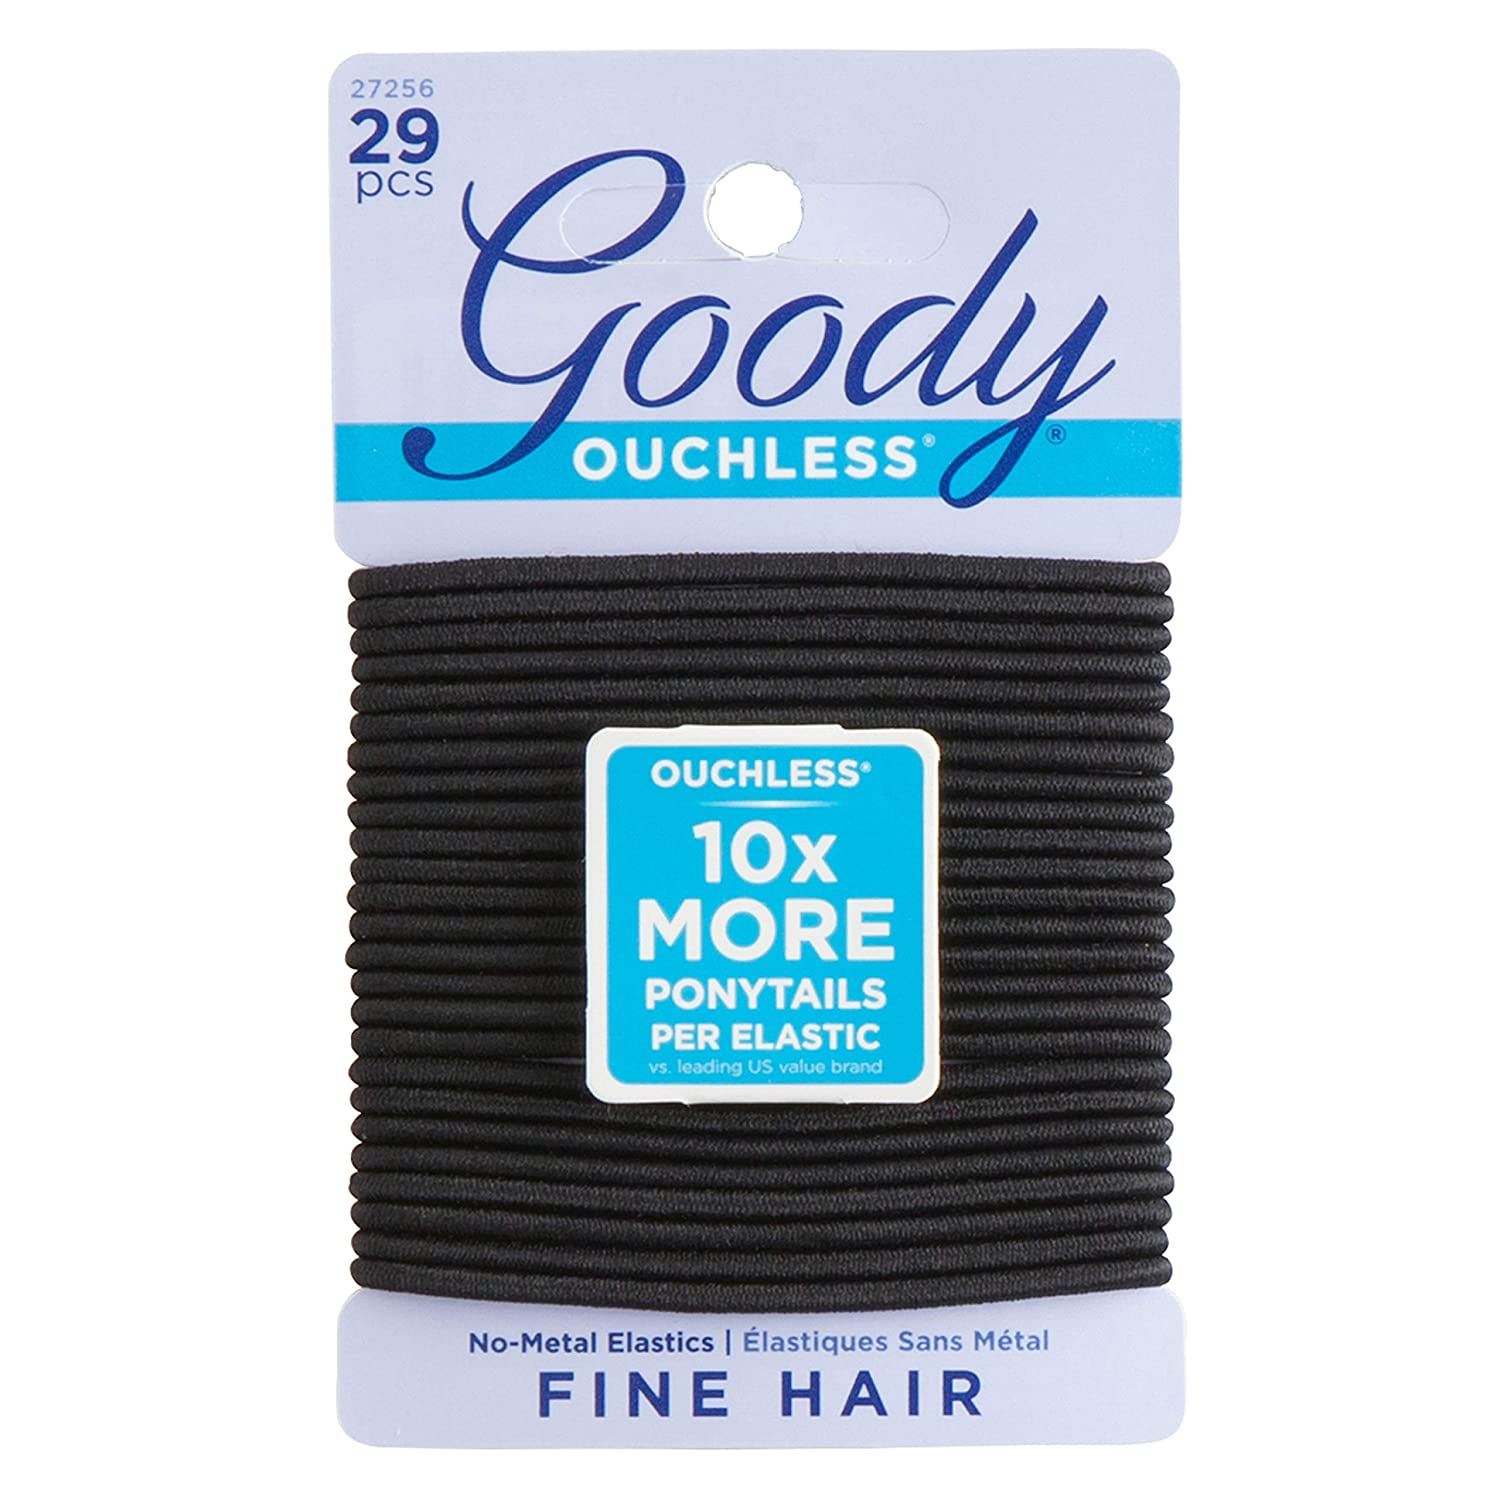 Goody Women's Ouchless 2 mm Elastics, Black, 29 Count : Ponytail Holders : Beauty